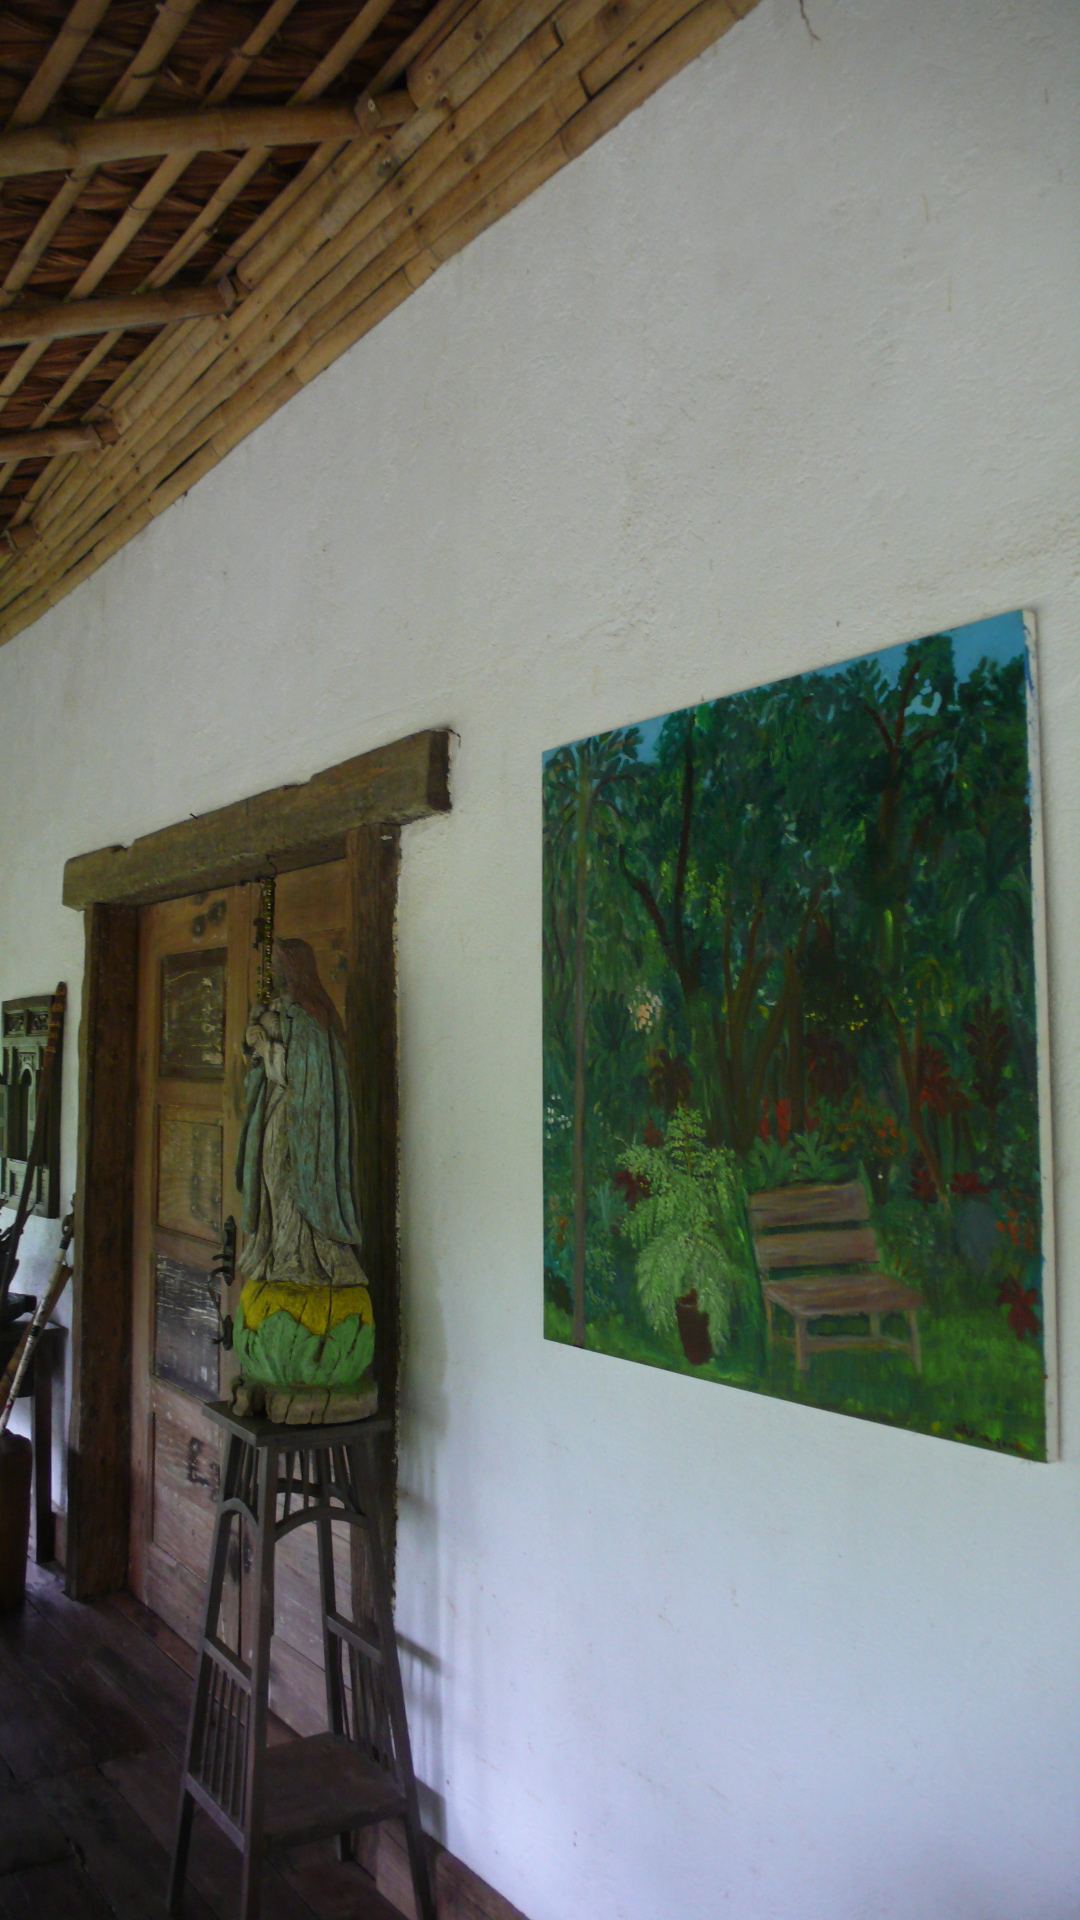 One of her paintings